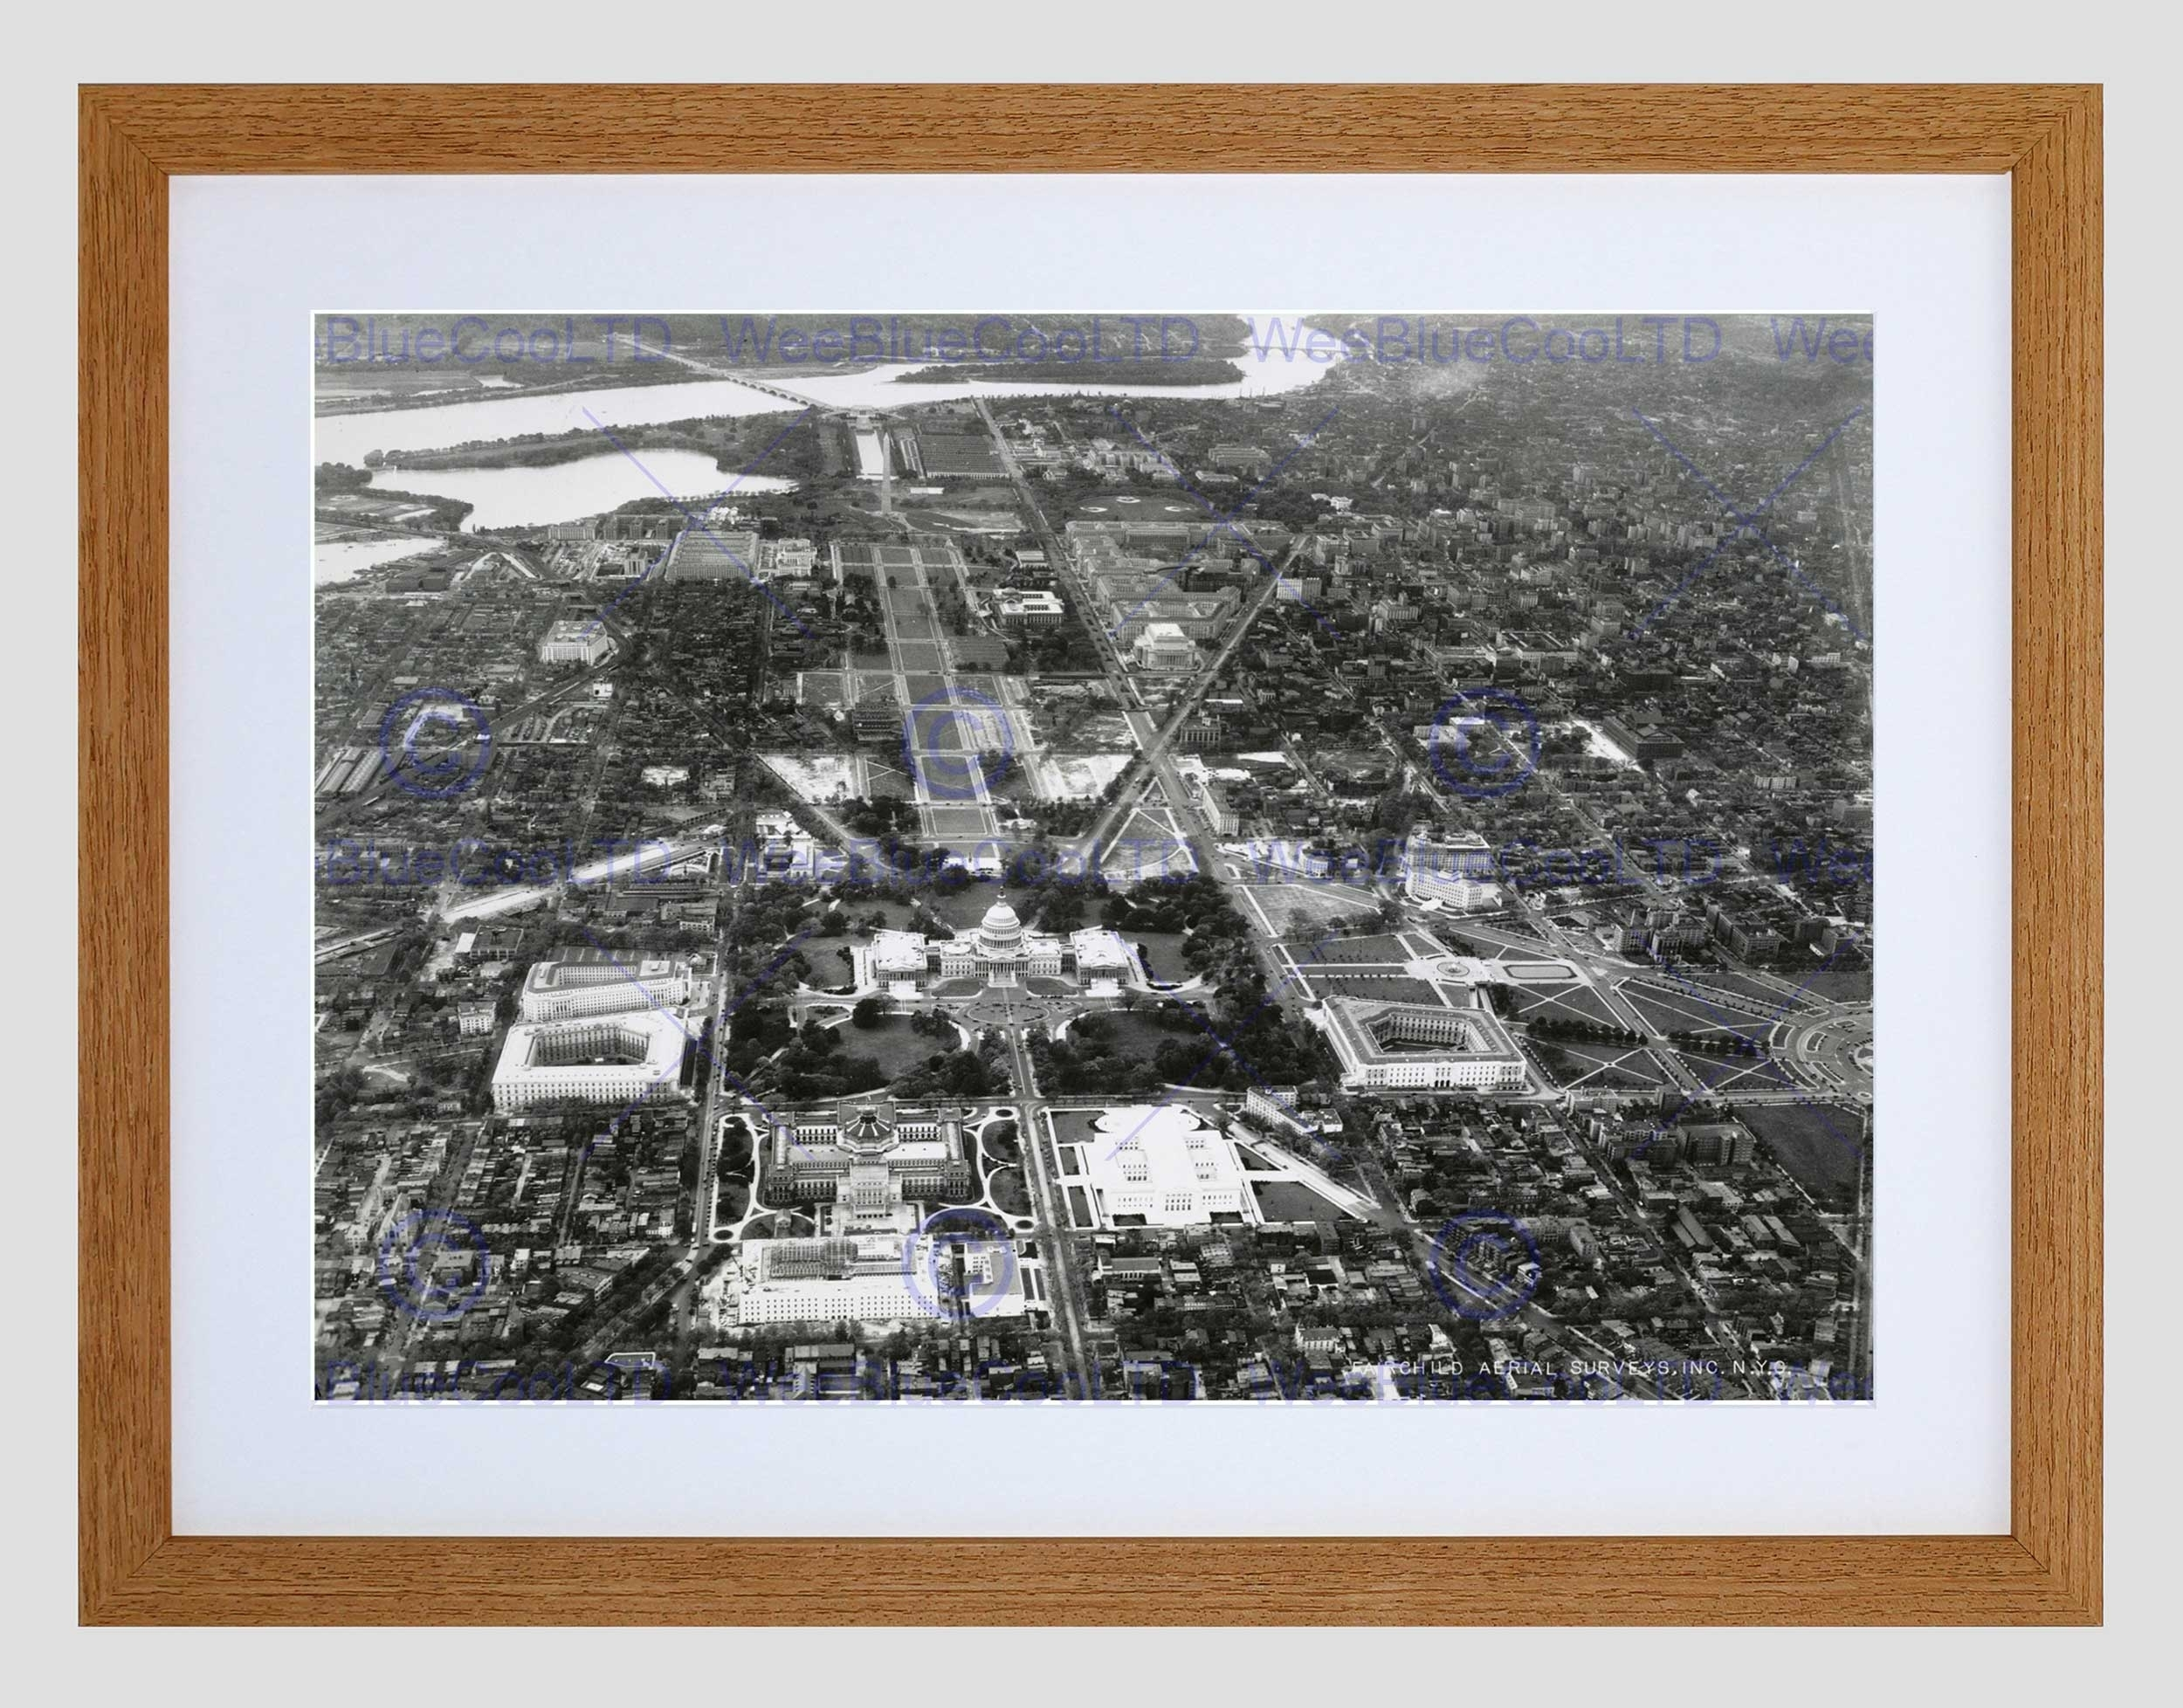 Vintage Aerial Capitol Hill Washington Dc America Usa Framed Art Throughout Most Recent Washington Dc Framed Art Prints (View 11 of 15)